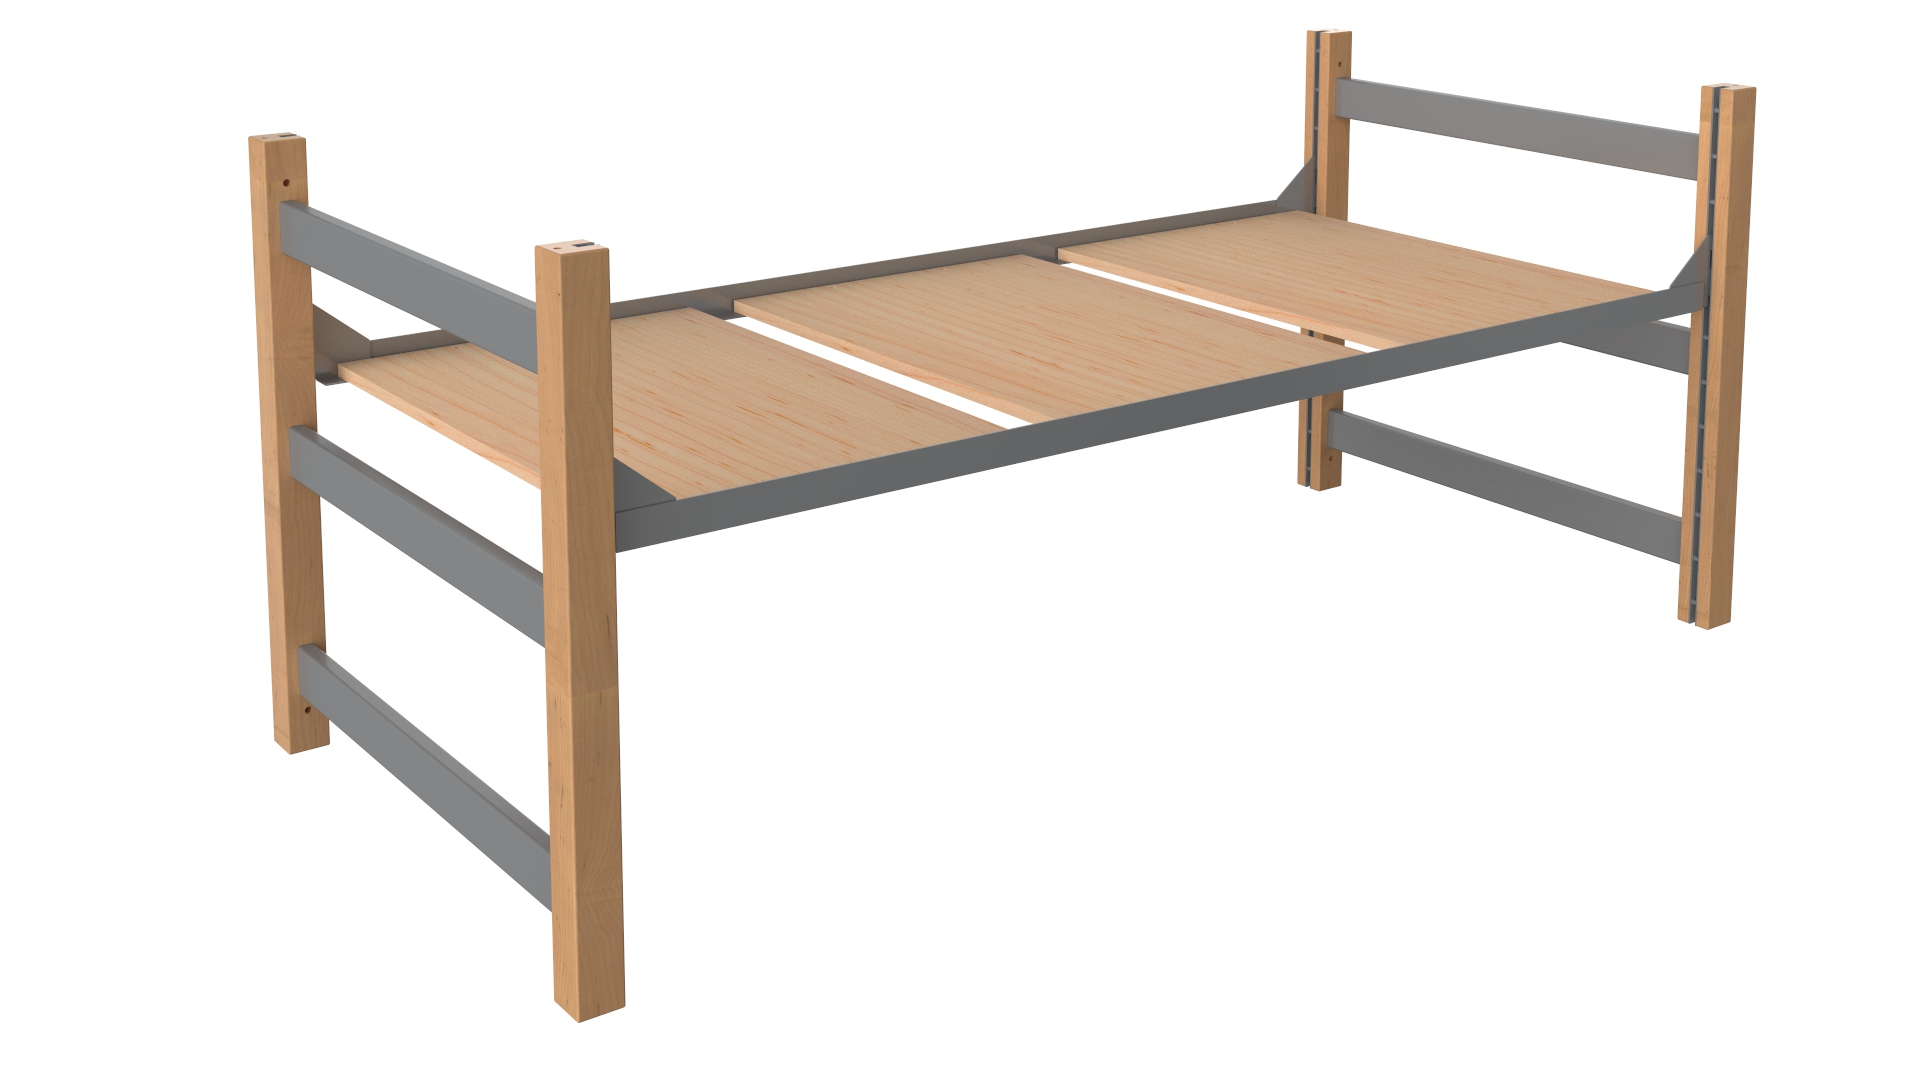 11 Position with Ply bottom